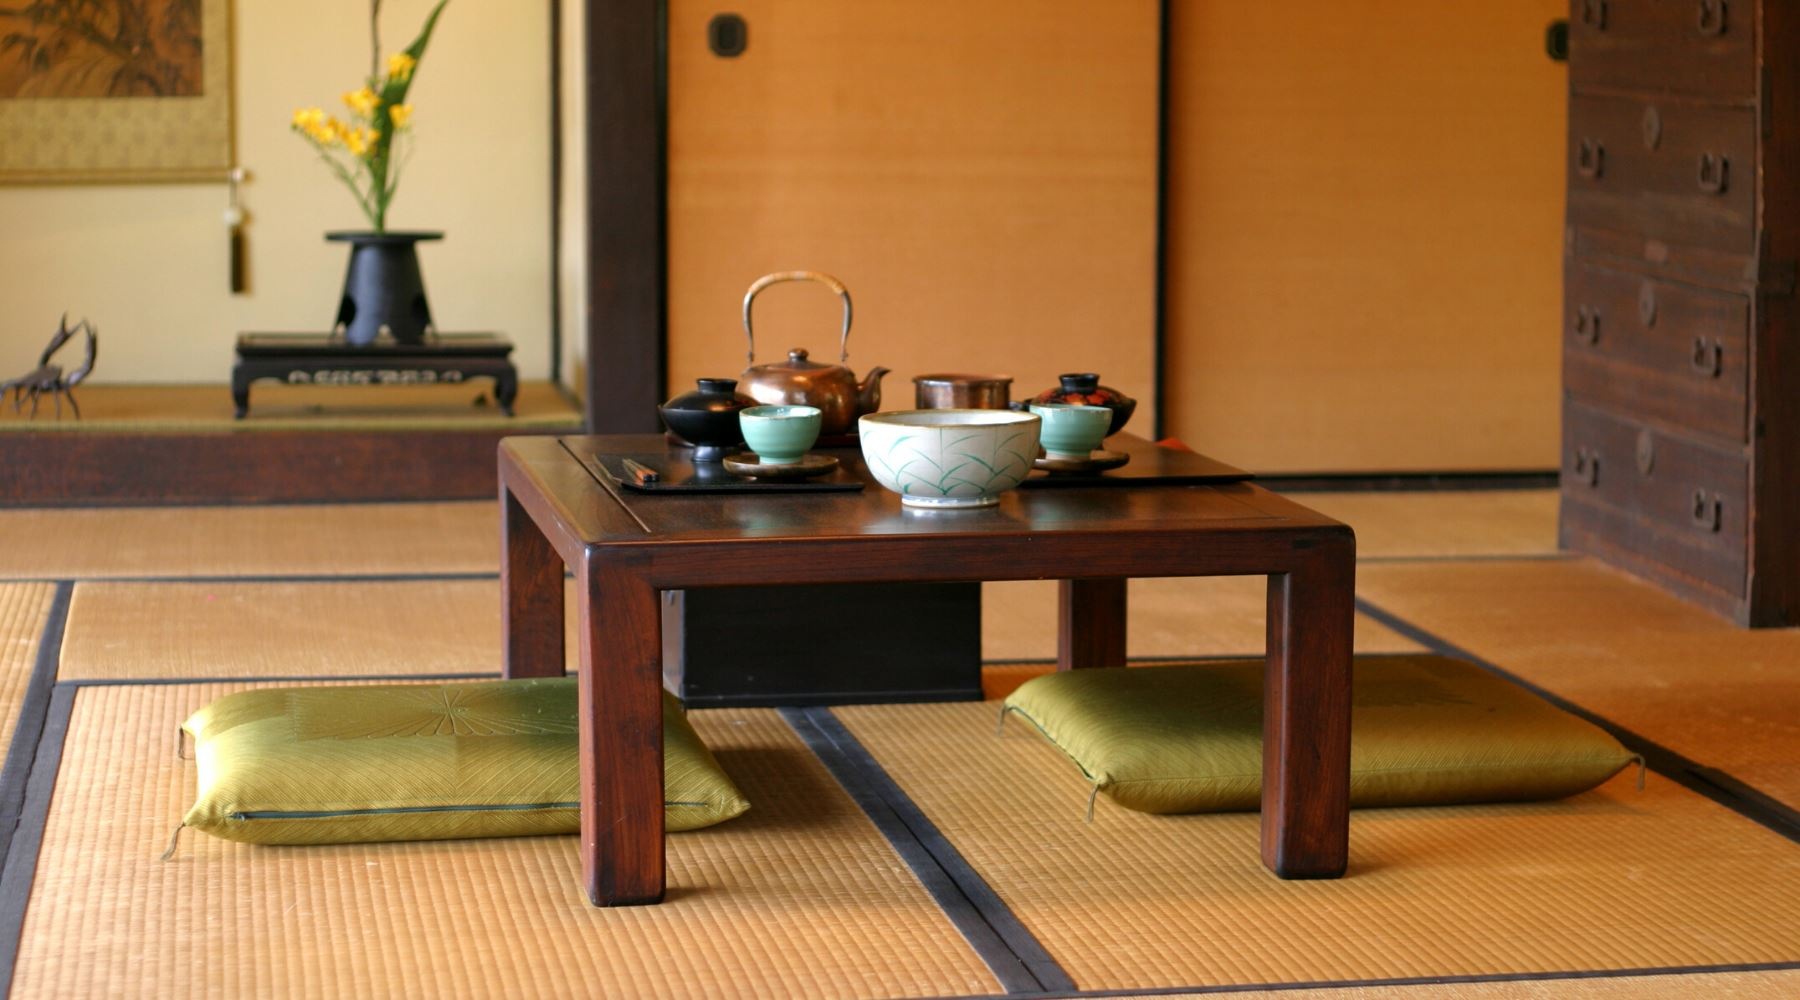 Japanese Tea Ceremony Utensils and Equipment